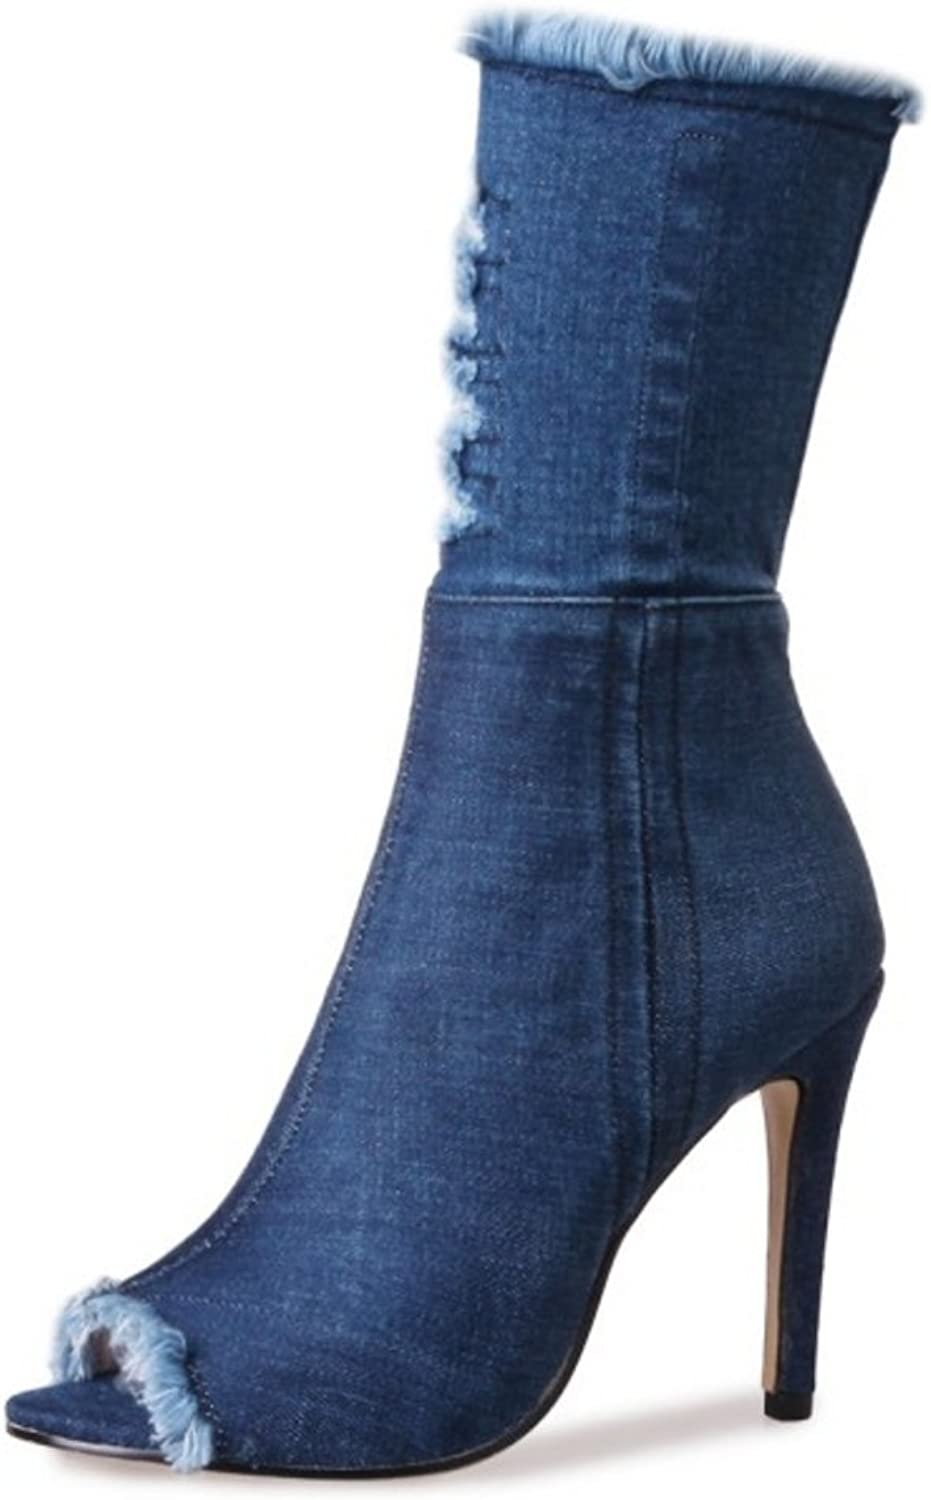 TAOFFEN Women Autumn Winter bluee Denim Peep Toe High Heel Long Boots Zipper